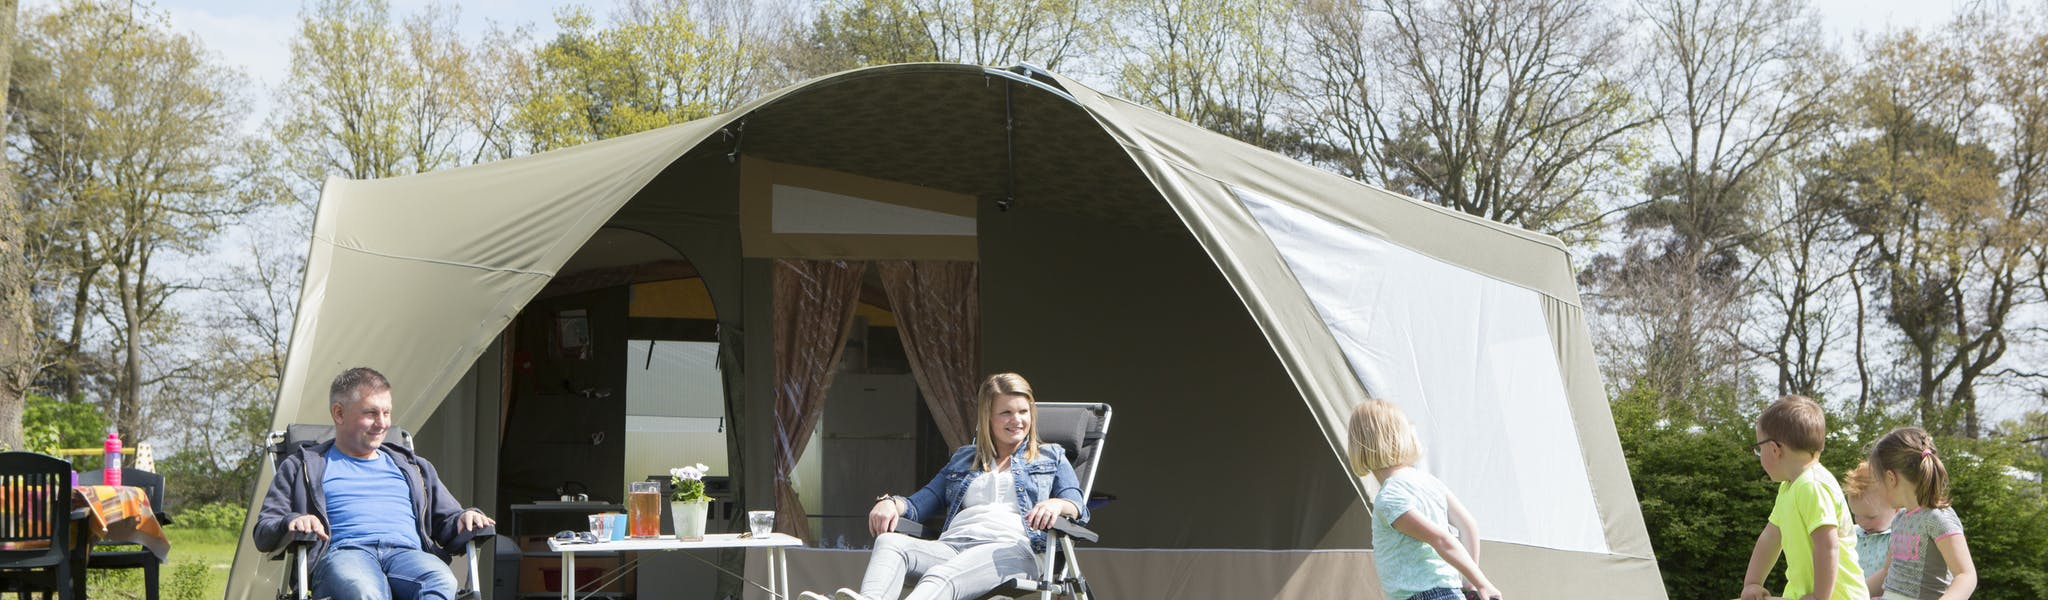 GlamLodge tent model